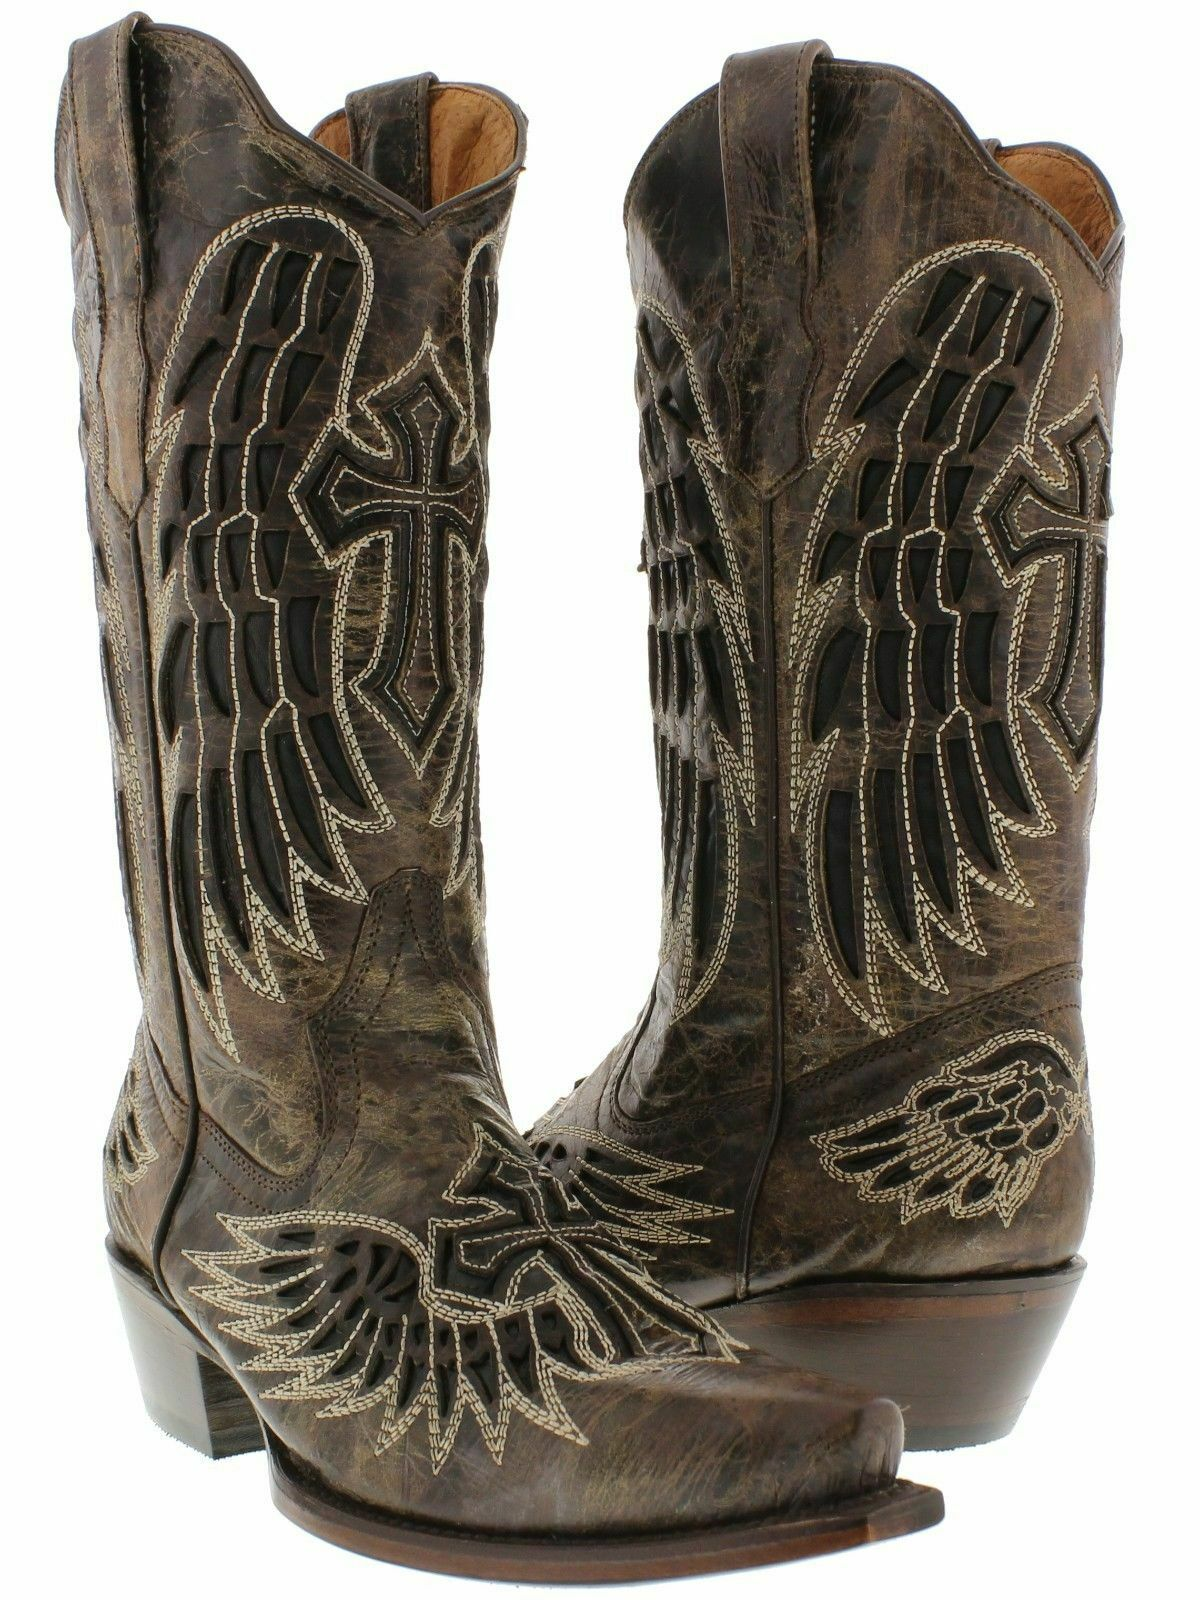 RODEO REBEL BOOTS Brown GENUINE LEATHER Allover Embroidered Cross Angel Wings Cowgirl Boots SIZES 6.5-11